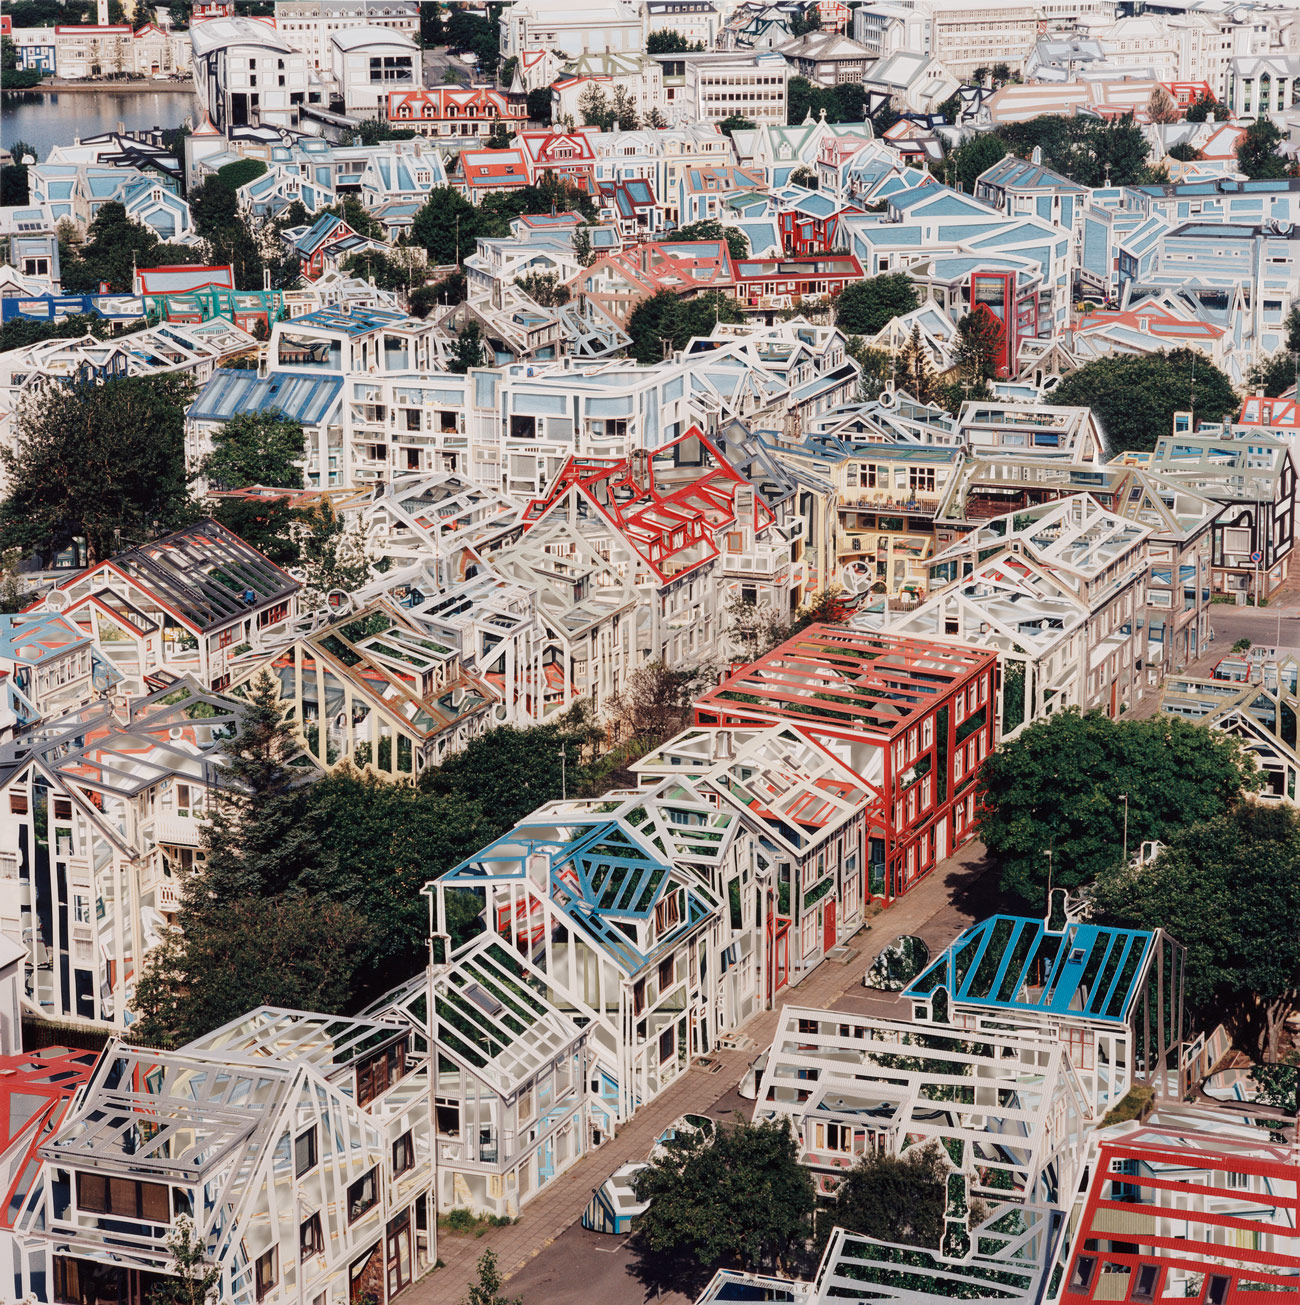 A photograph looking down upon a residential neighborhood in city has been altered to show transparent buildings with brightly colored frames.